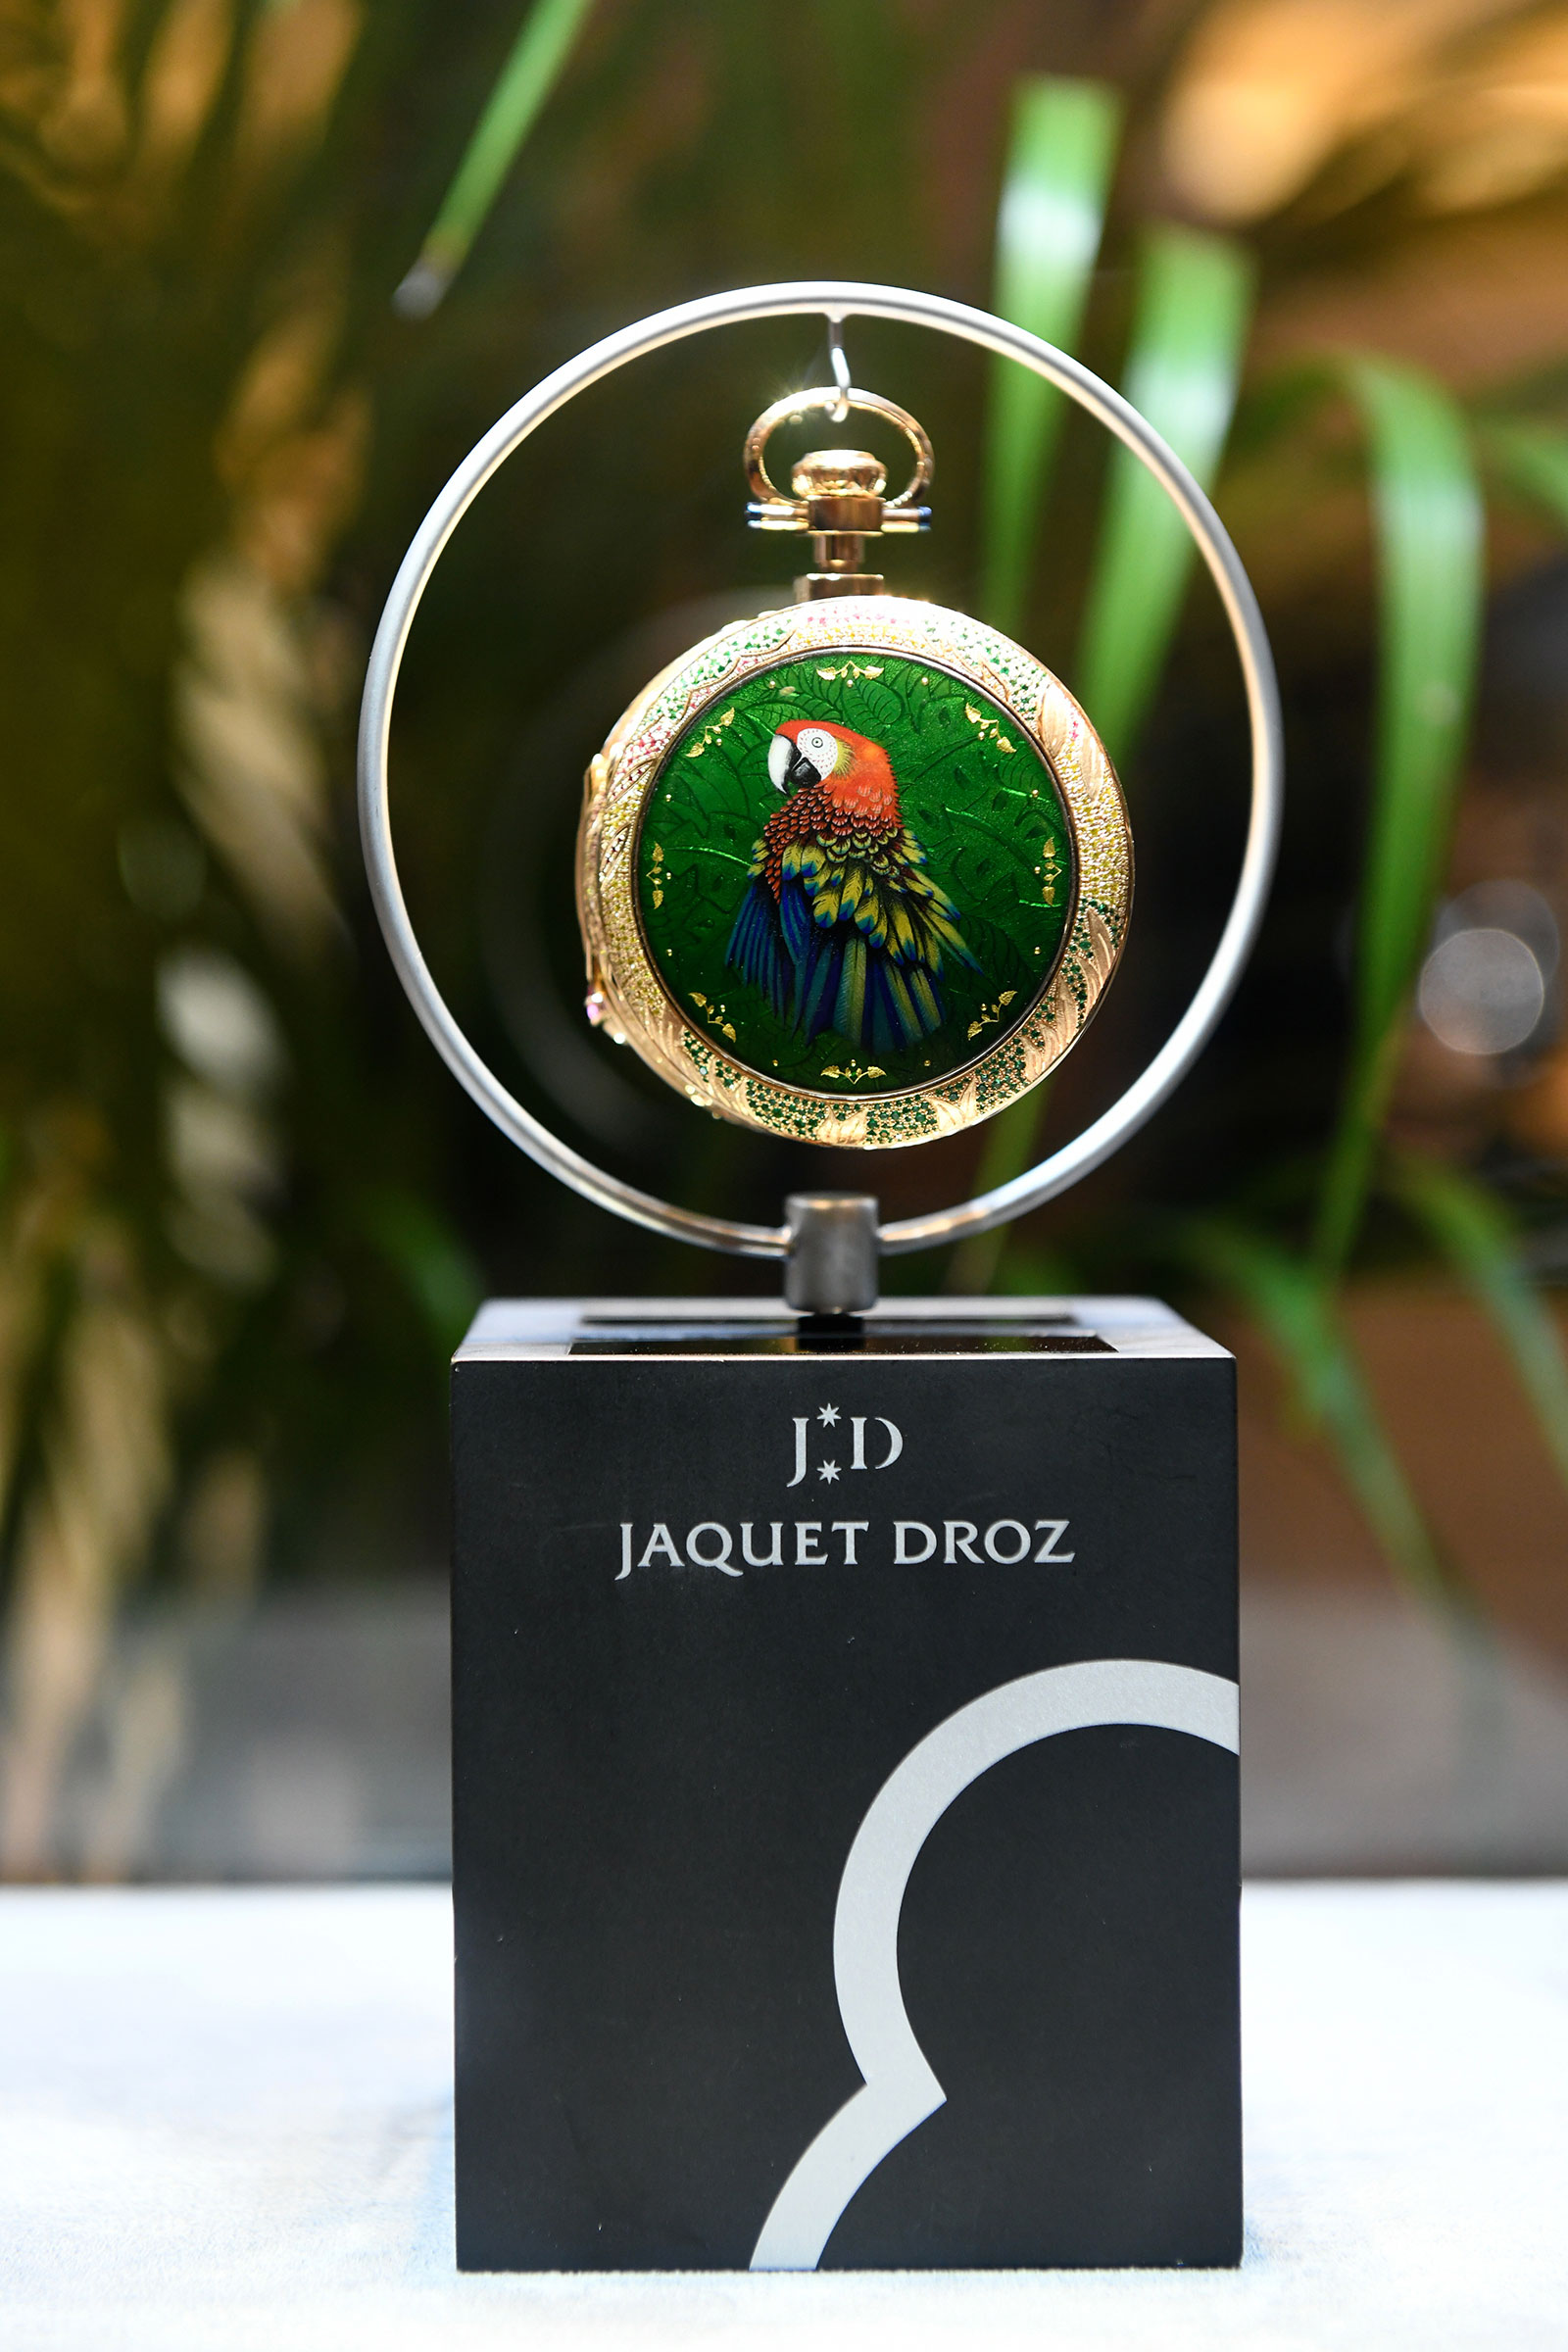 Jaquet Droz Parrot Repeater Watch Singapore 2